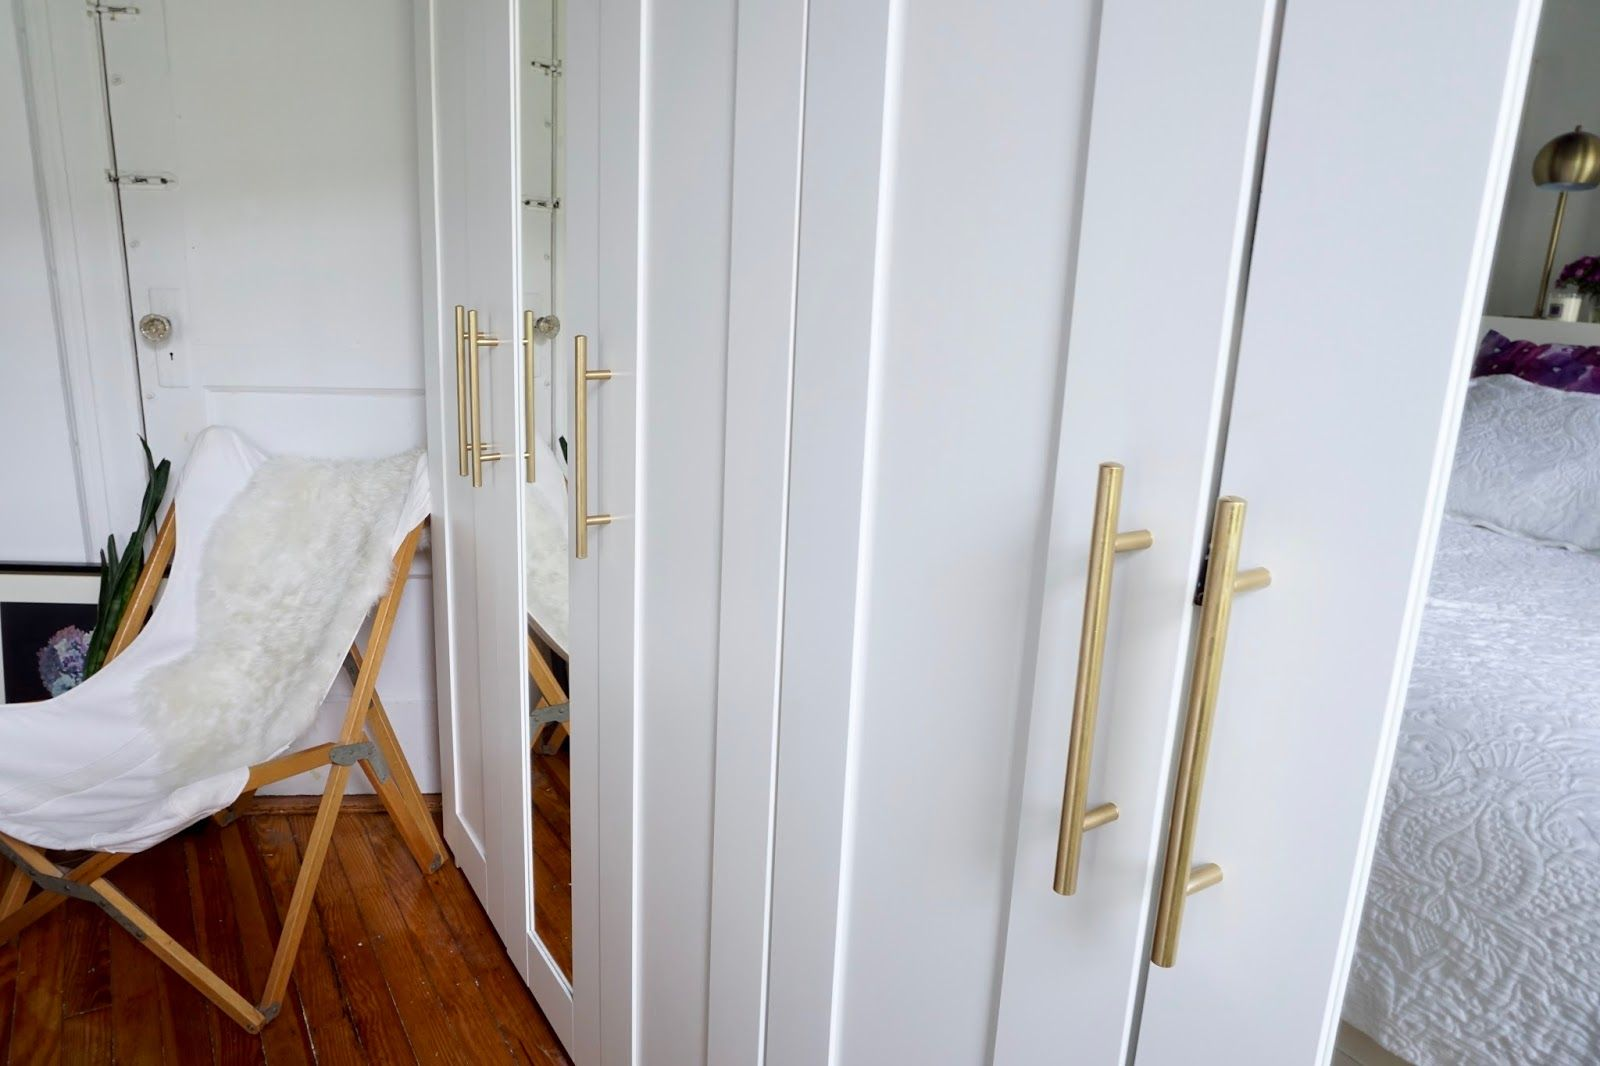 Diy Ikea Brimnes Wardrobe Handle Upgrade Ikea Brimnes Wardrobe